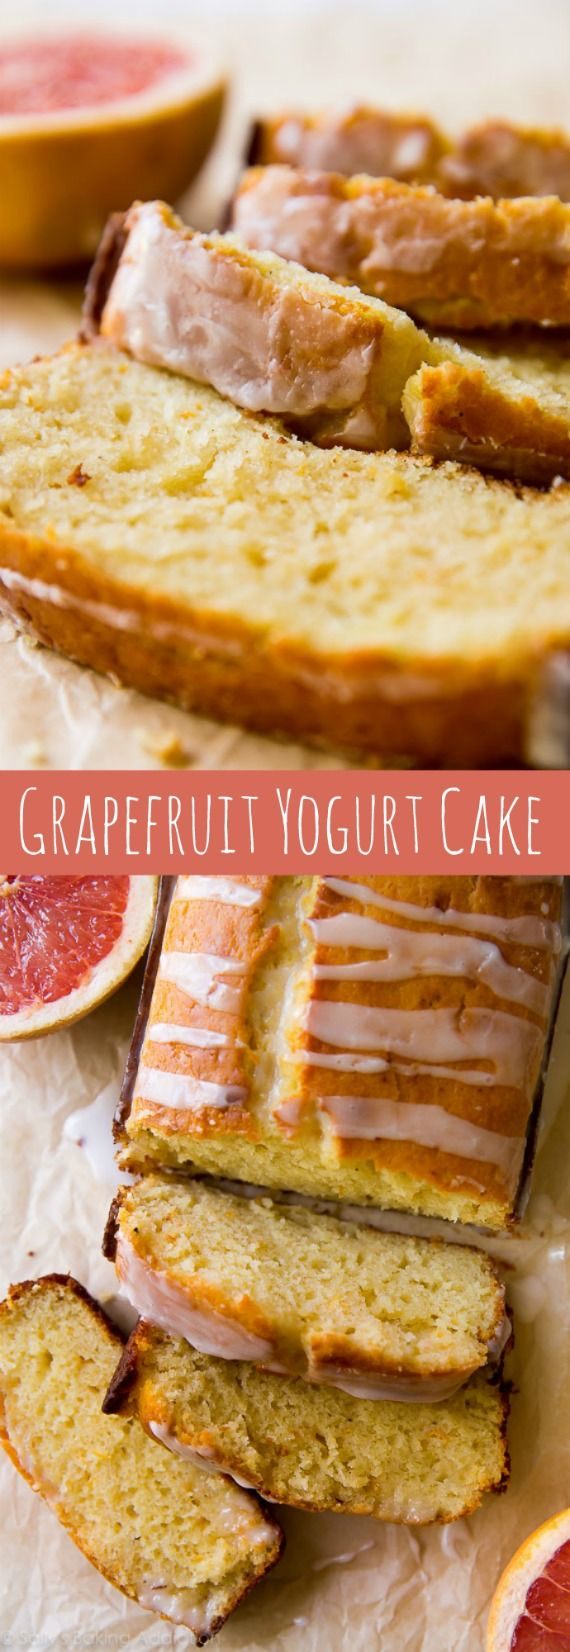 Unbelievably moist grapefruit loaf cake made with Greek yogurt and fresh grapefruit juice! The flavor and texture are both incredible! Recipe on sallysbakingaddiction.com